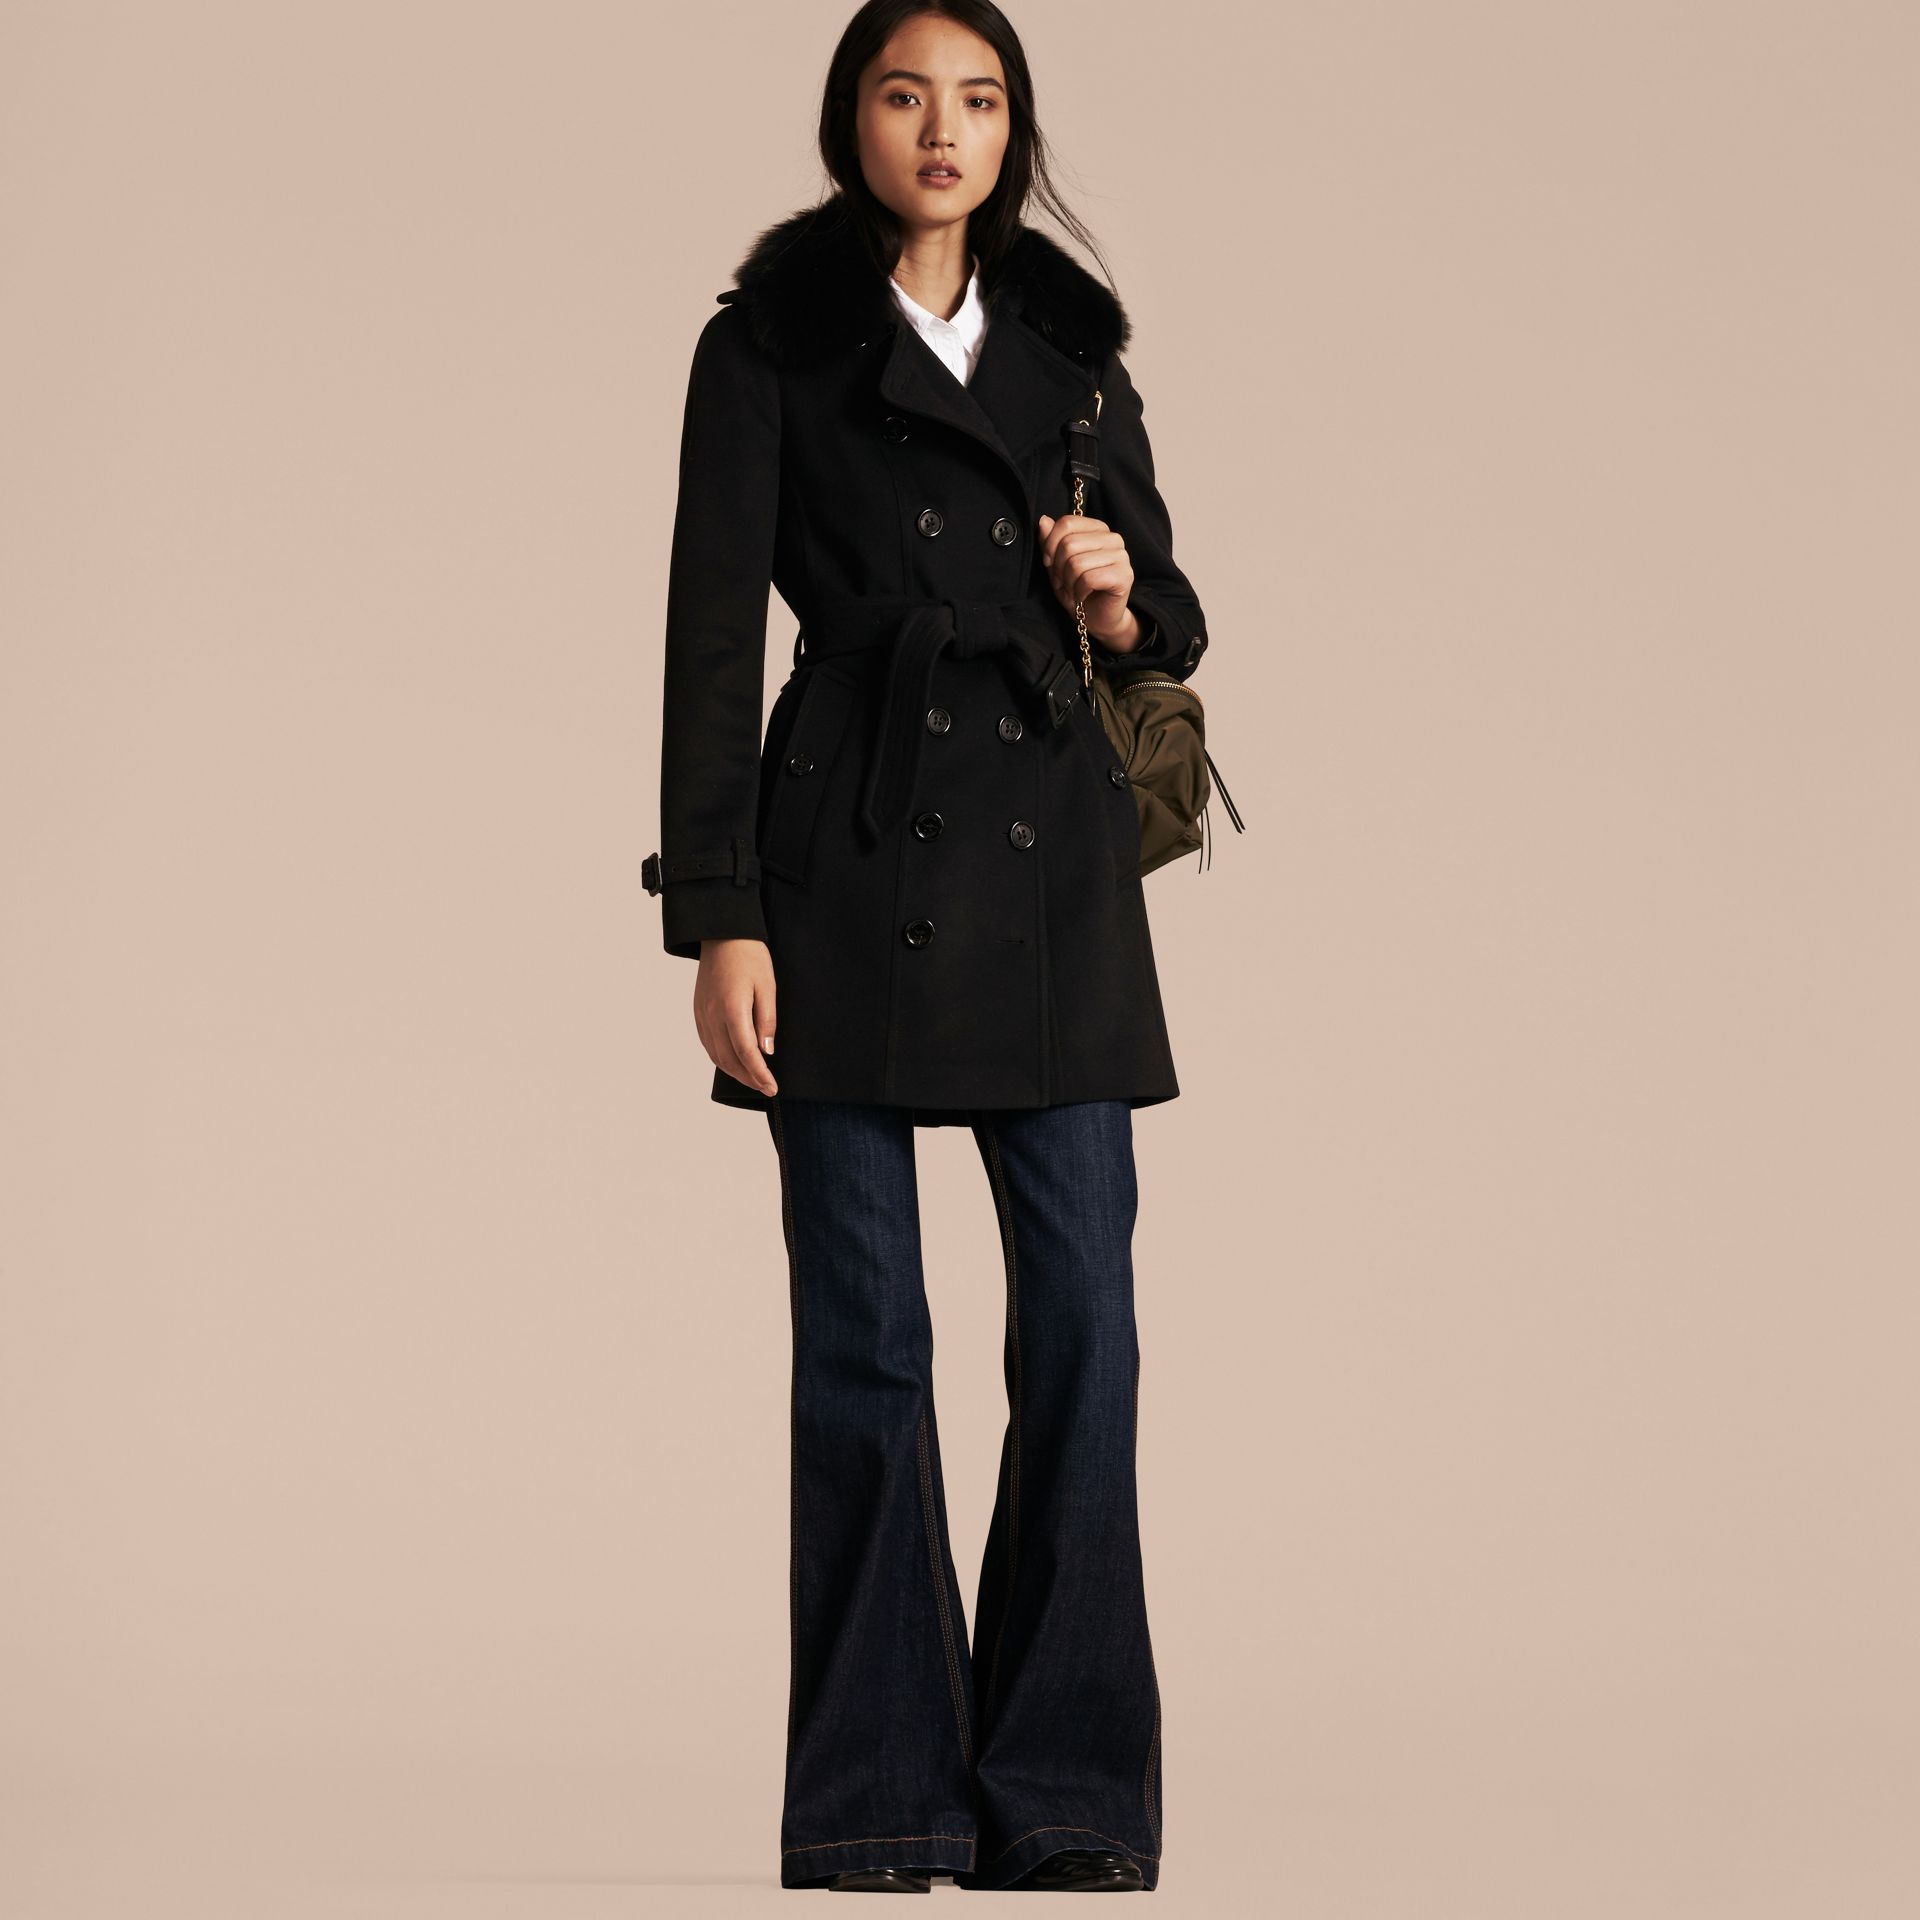 Wool Cashmere Trench Coat with Fur Collar in Black - Women | Burberry